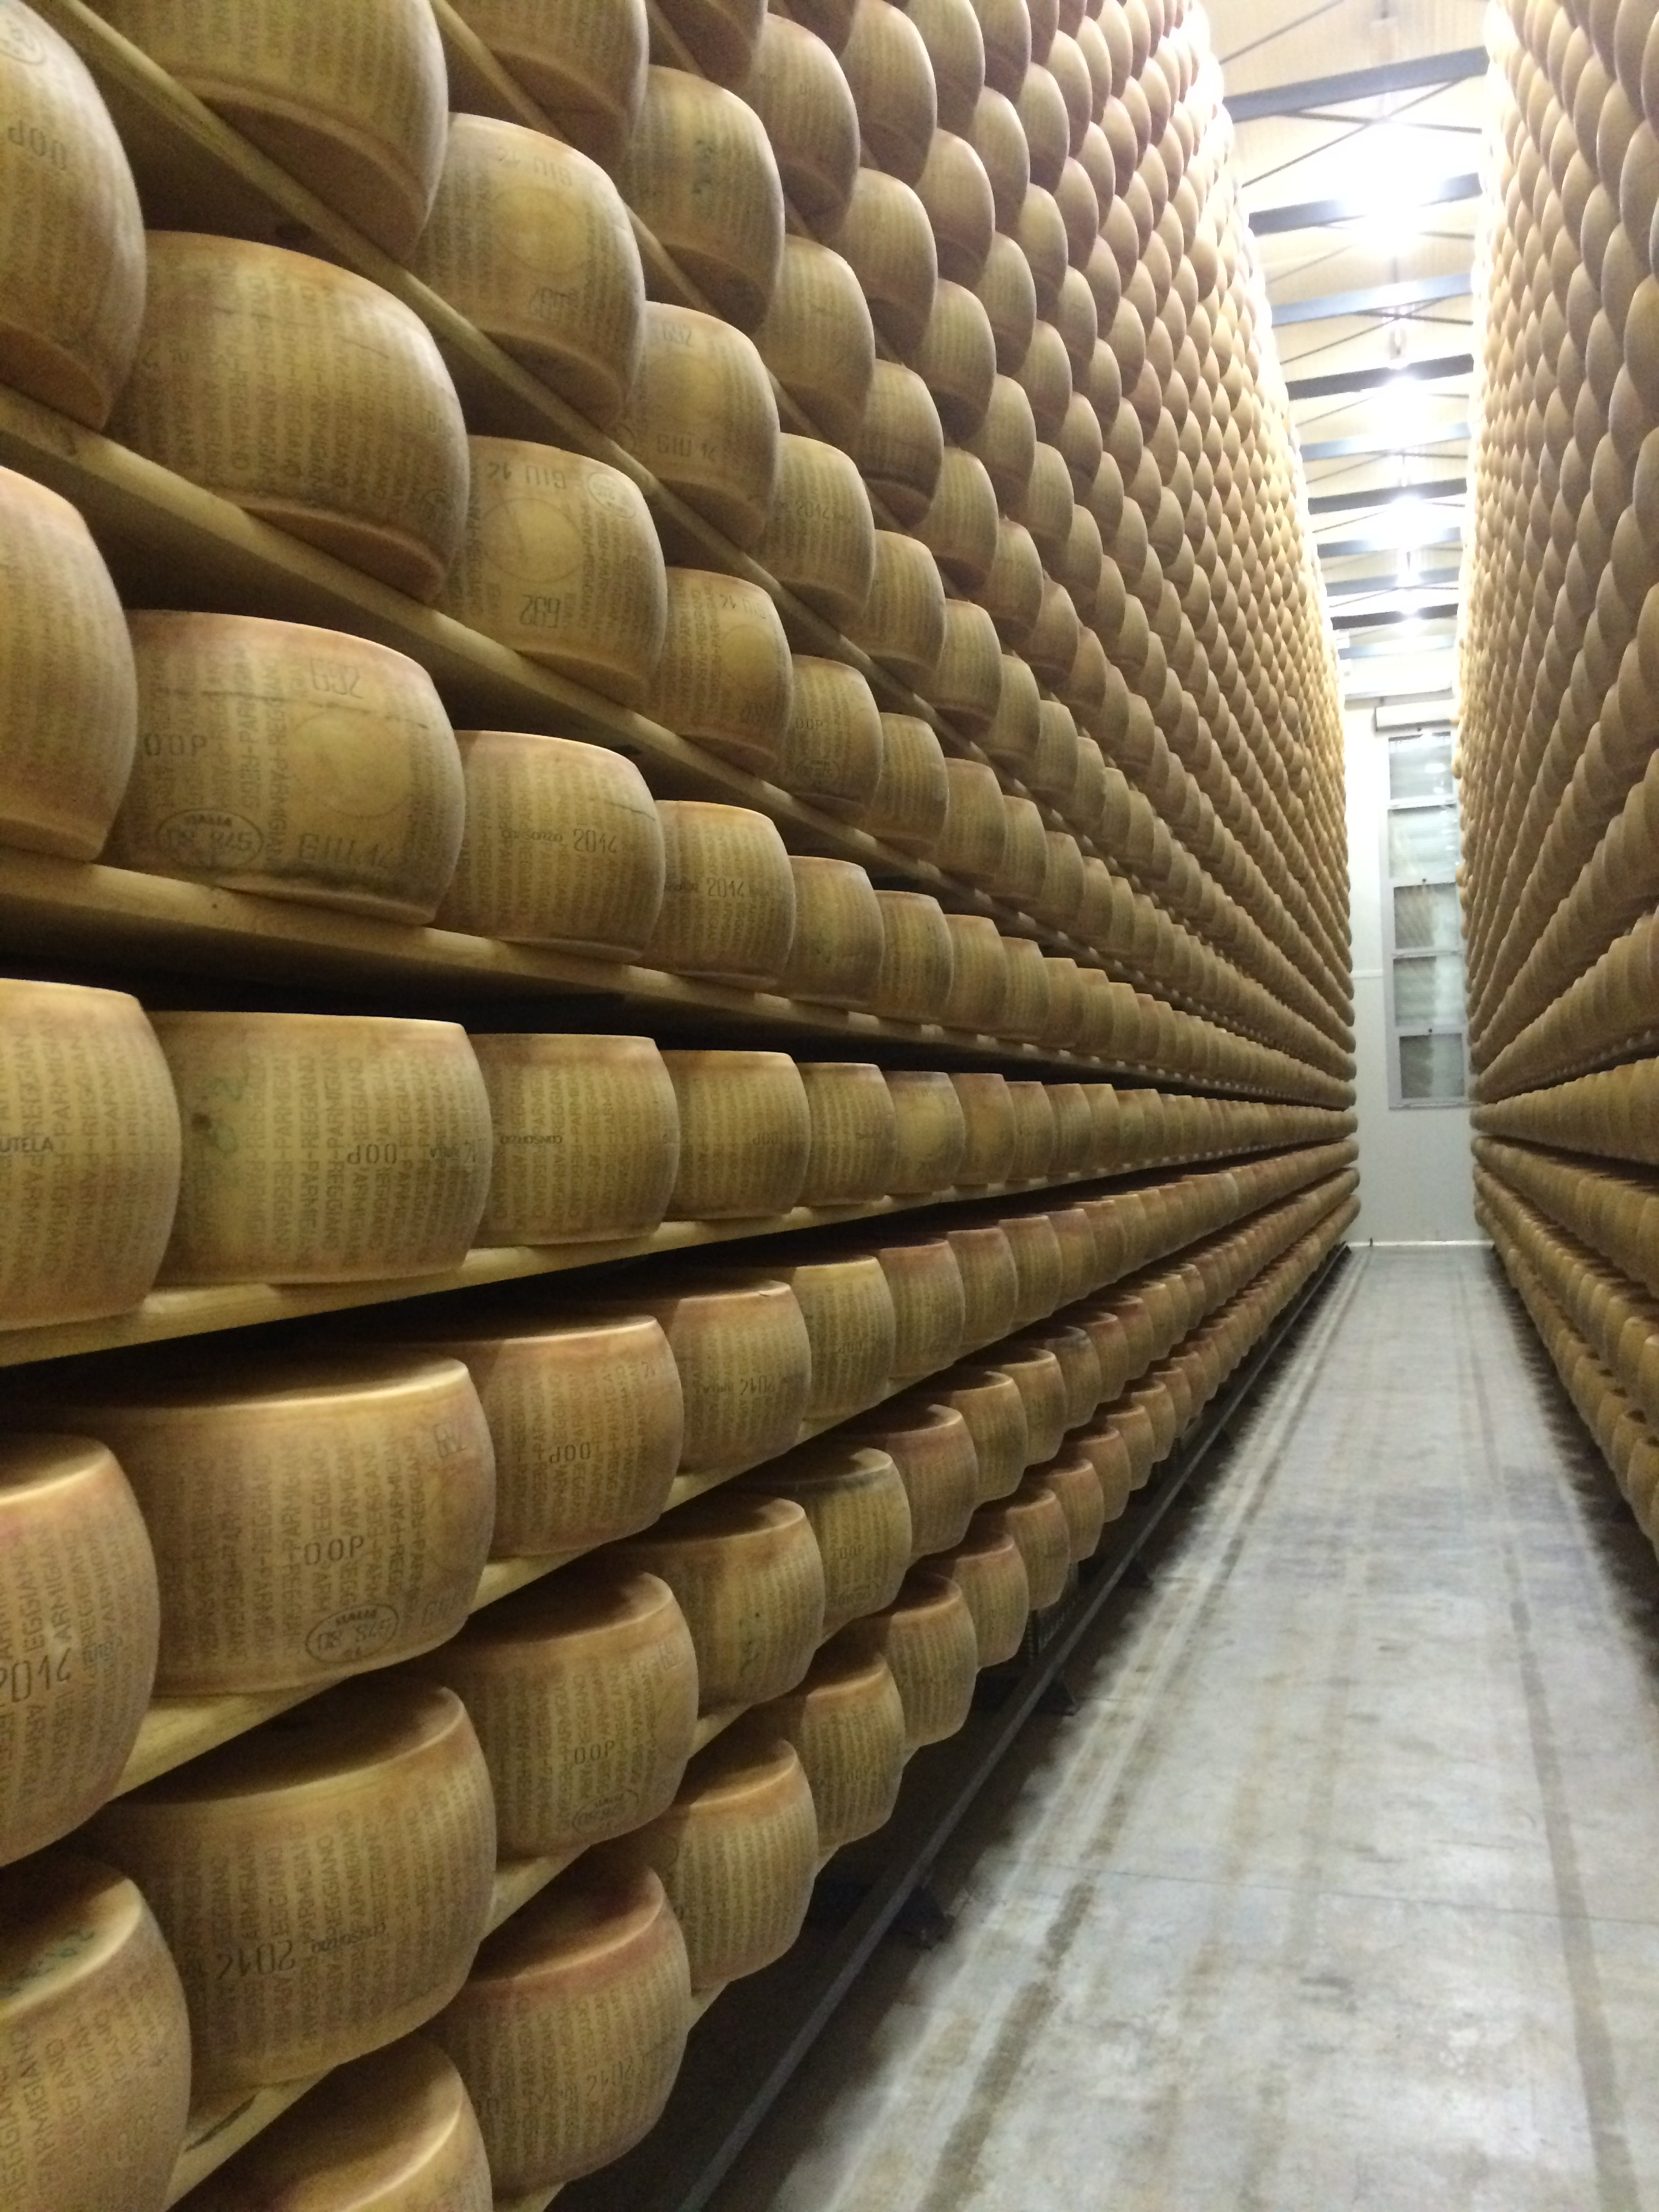 Parmigiano in the San Simone warehouse - the ageing process begins